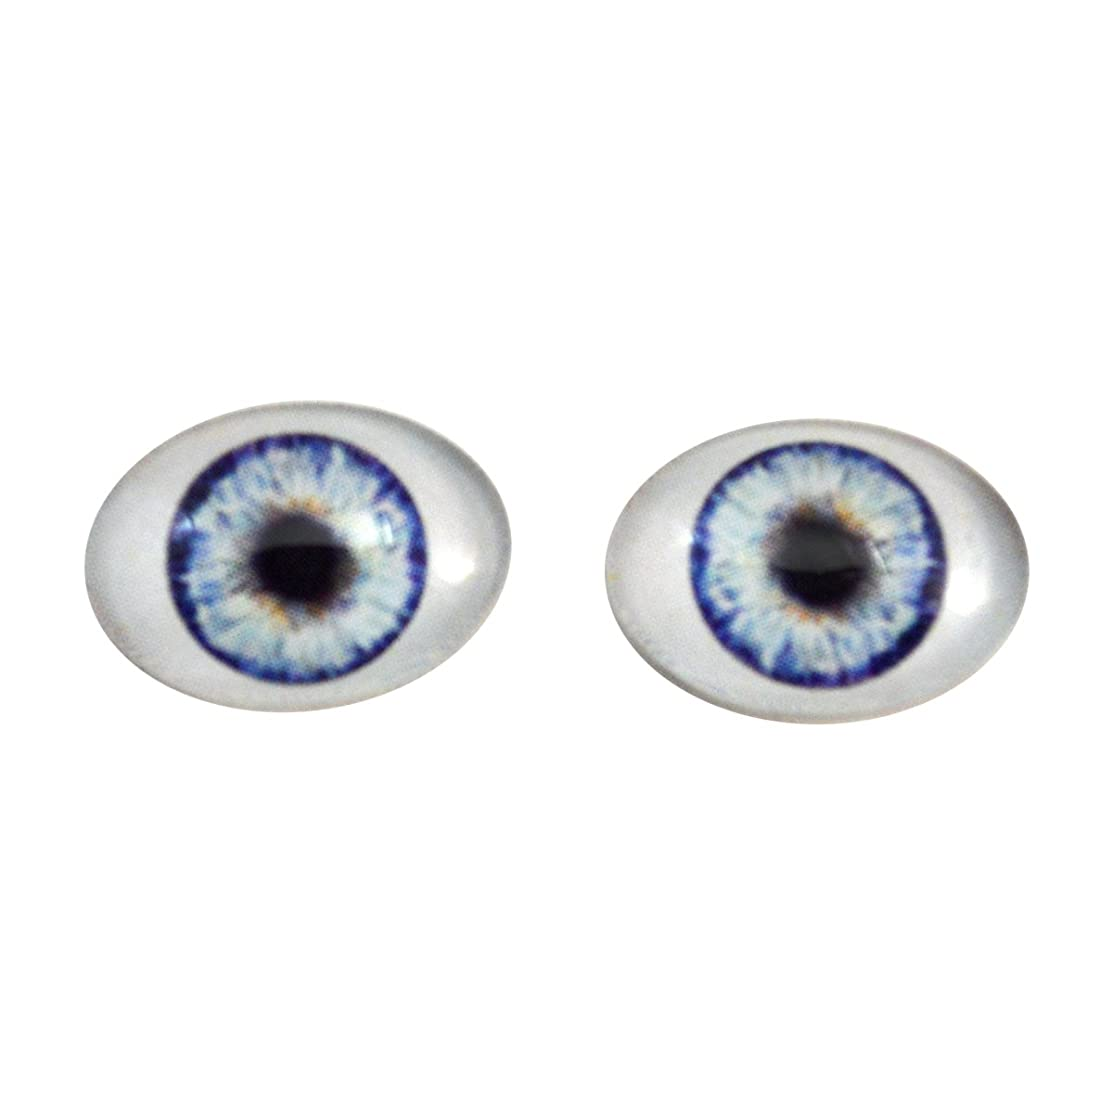 Blue Doll Oval Glass Eyes Fantasy Taxidermy Art Doll Making or Jewelry Crafts Set of 2 (18mm x 25mm)